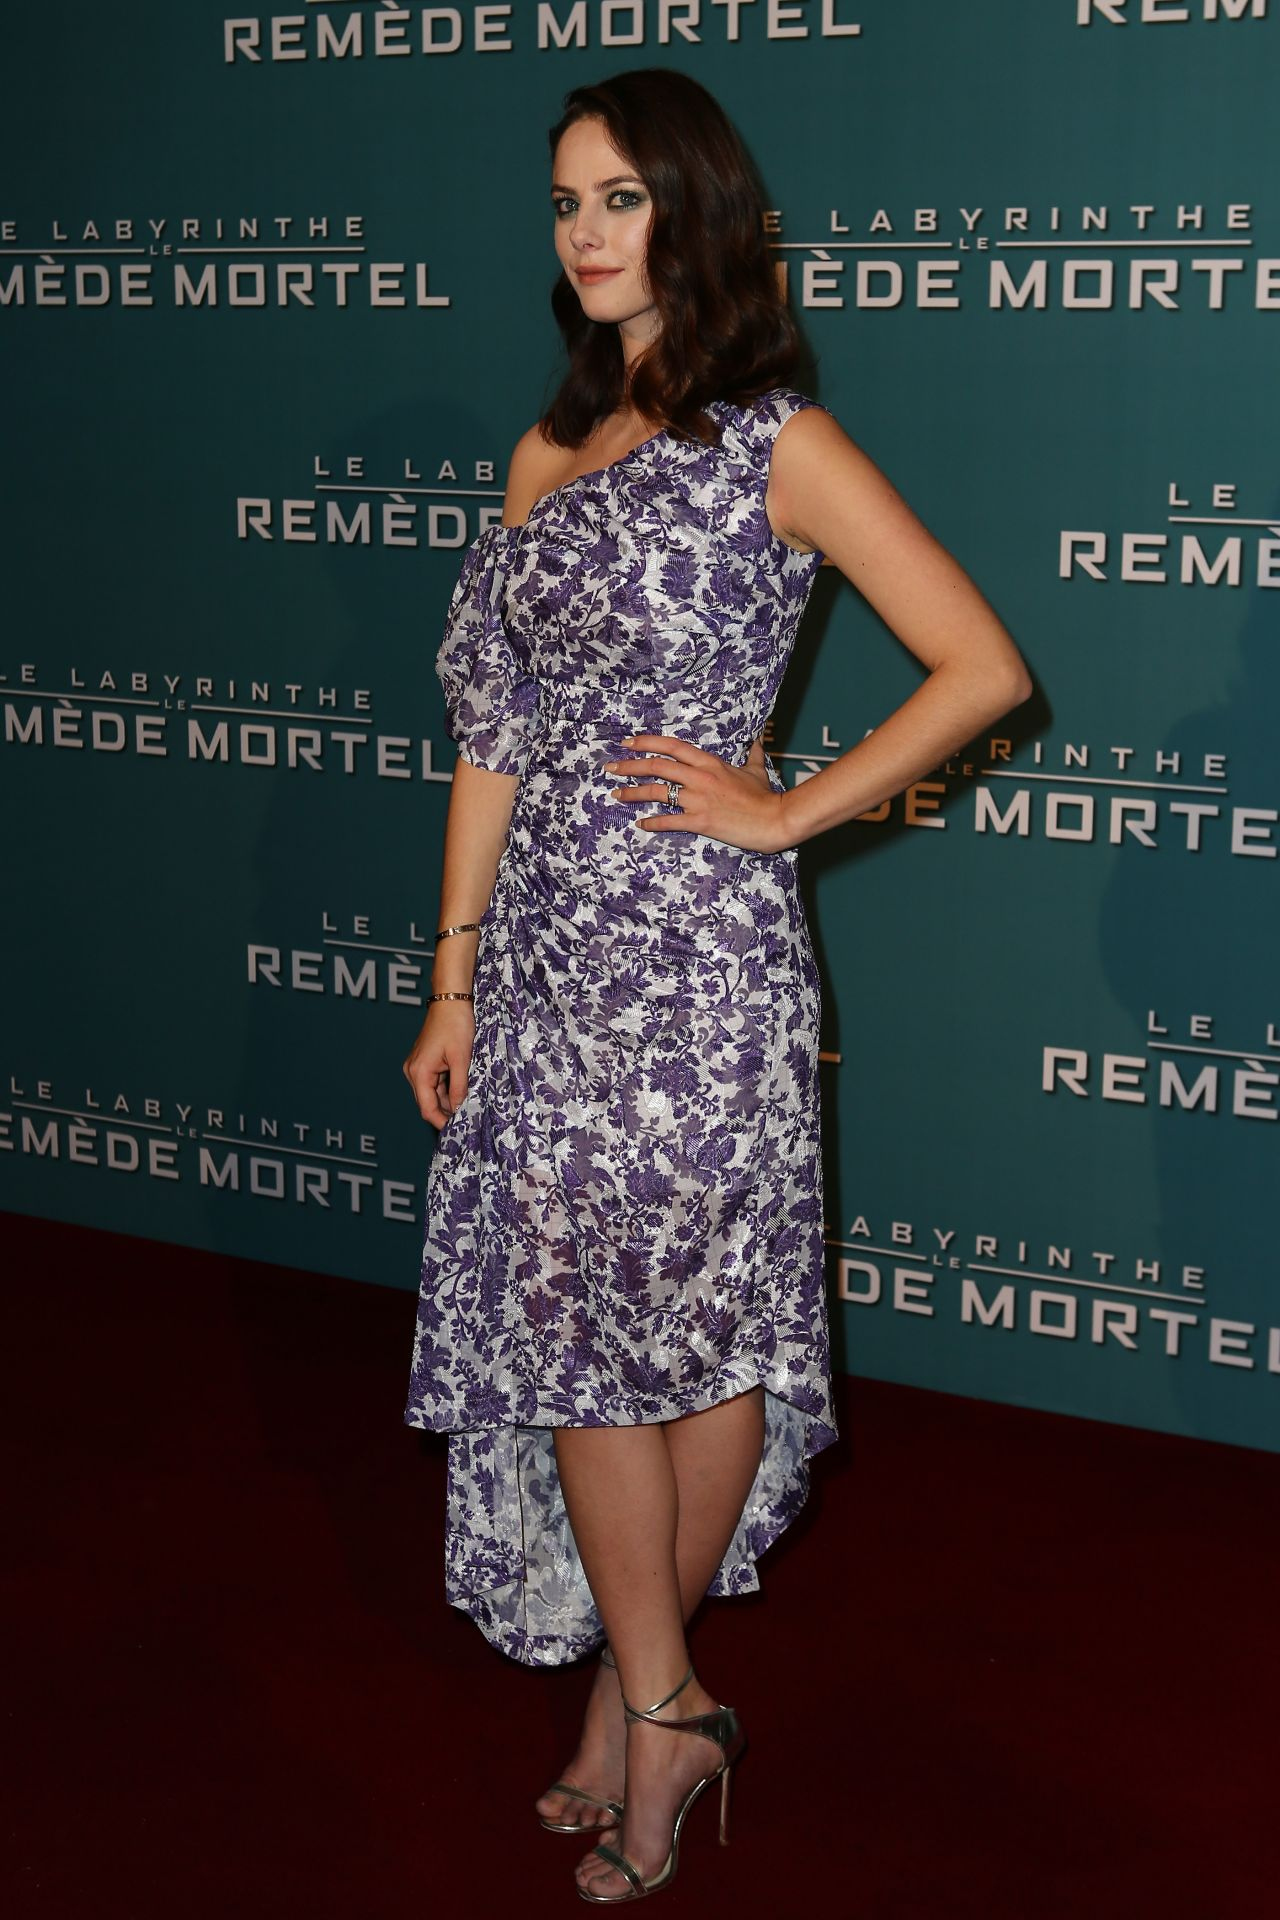 http://celebmafia.com/wp-content/uploads/2018/01/kaya-scodelario-maze-runner-the-death-cure-premiere-in-paris-1.jpg